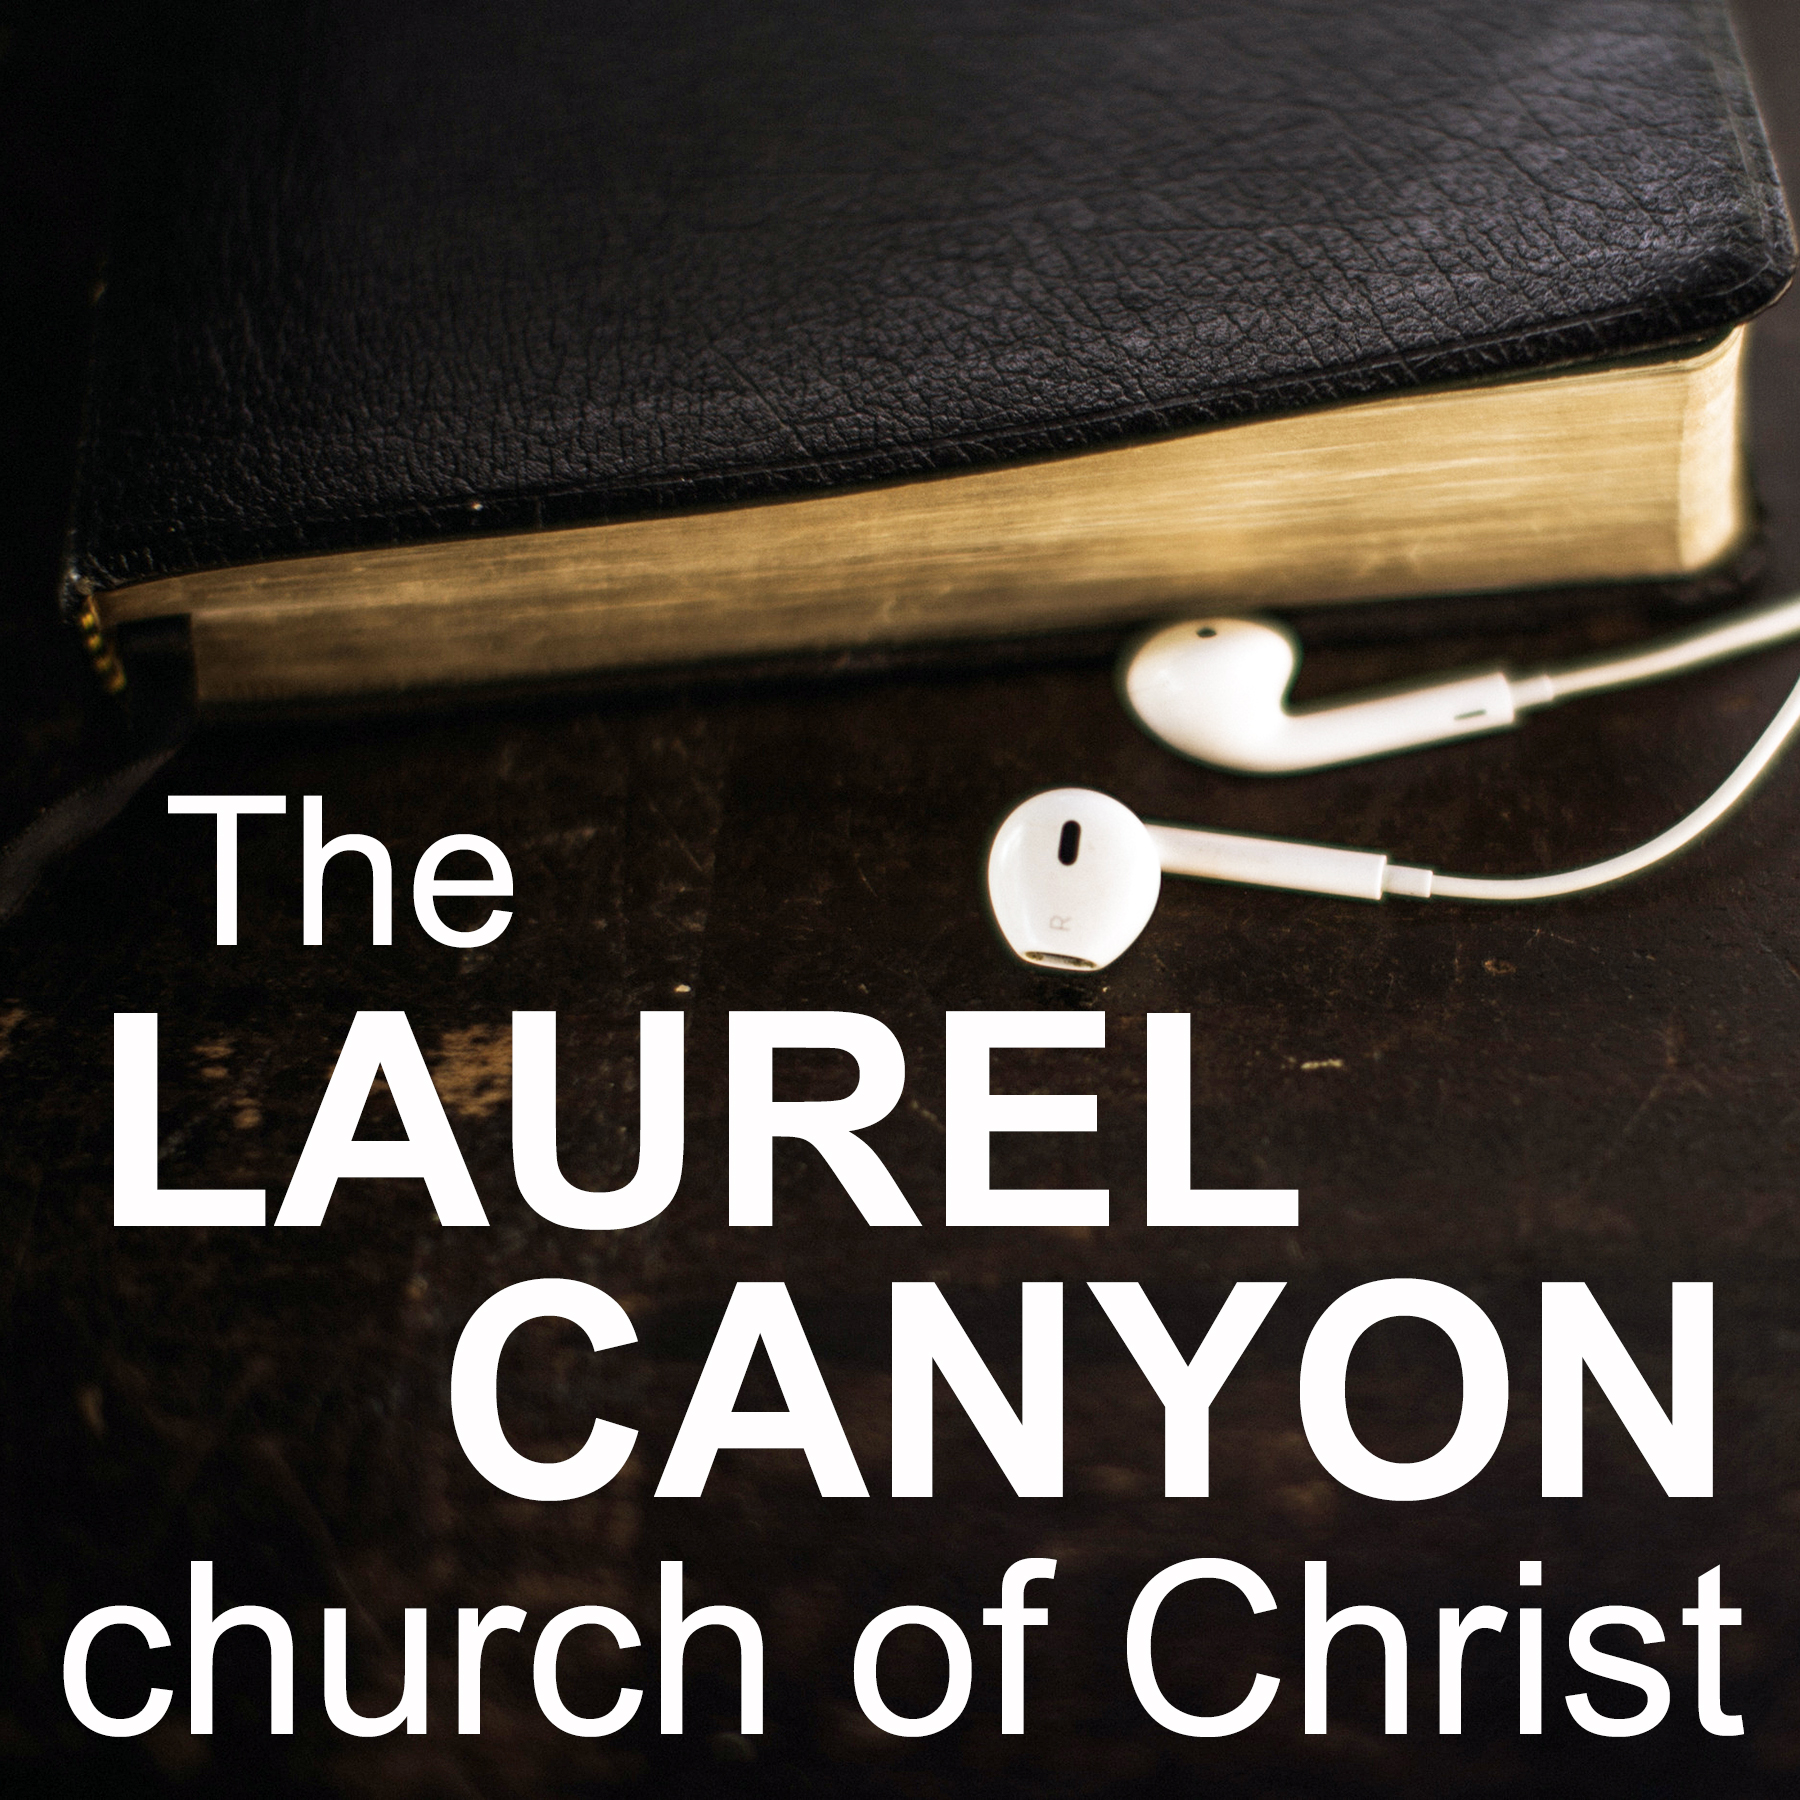 Laurel Canyon church of Christ Podcast